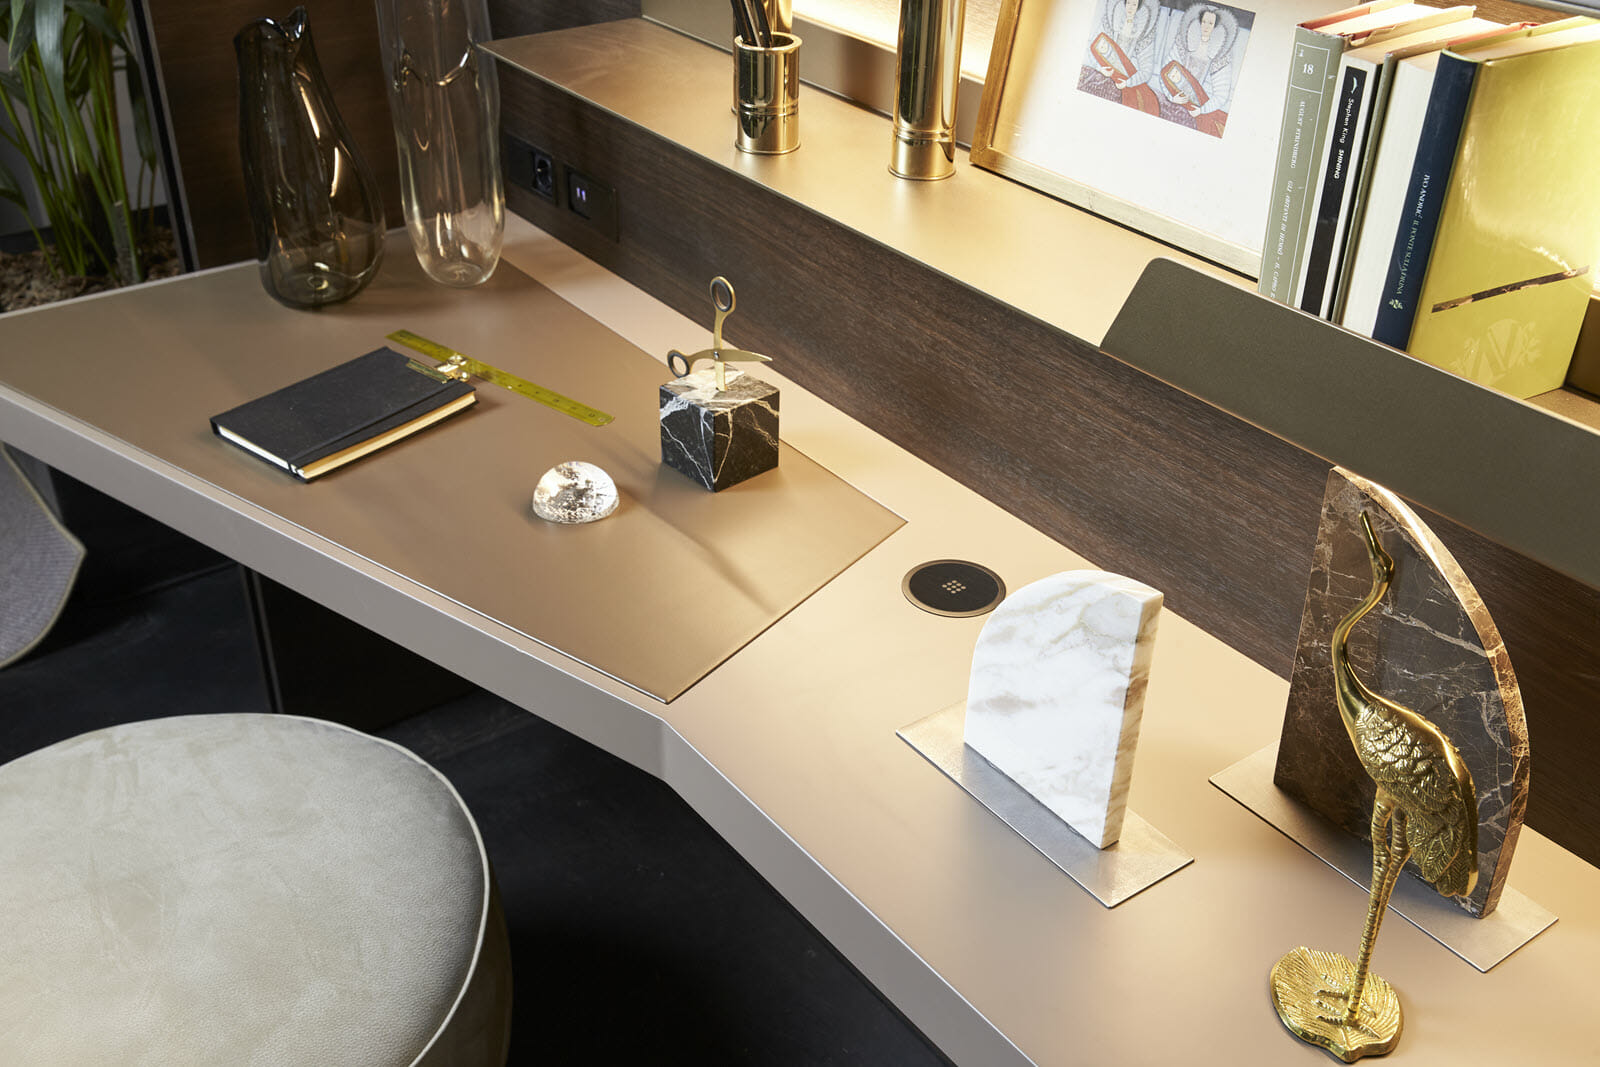 Our Freestanding Desk Units can be customized with built-in phone chargers, USB ports, outlets and more, so you can accomodate all of your devices and tech accessories.